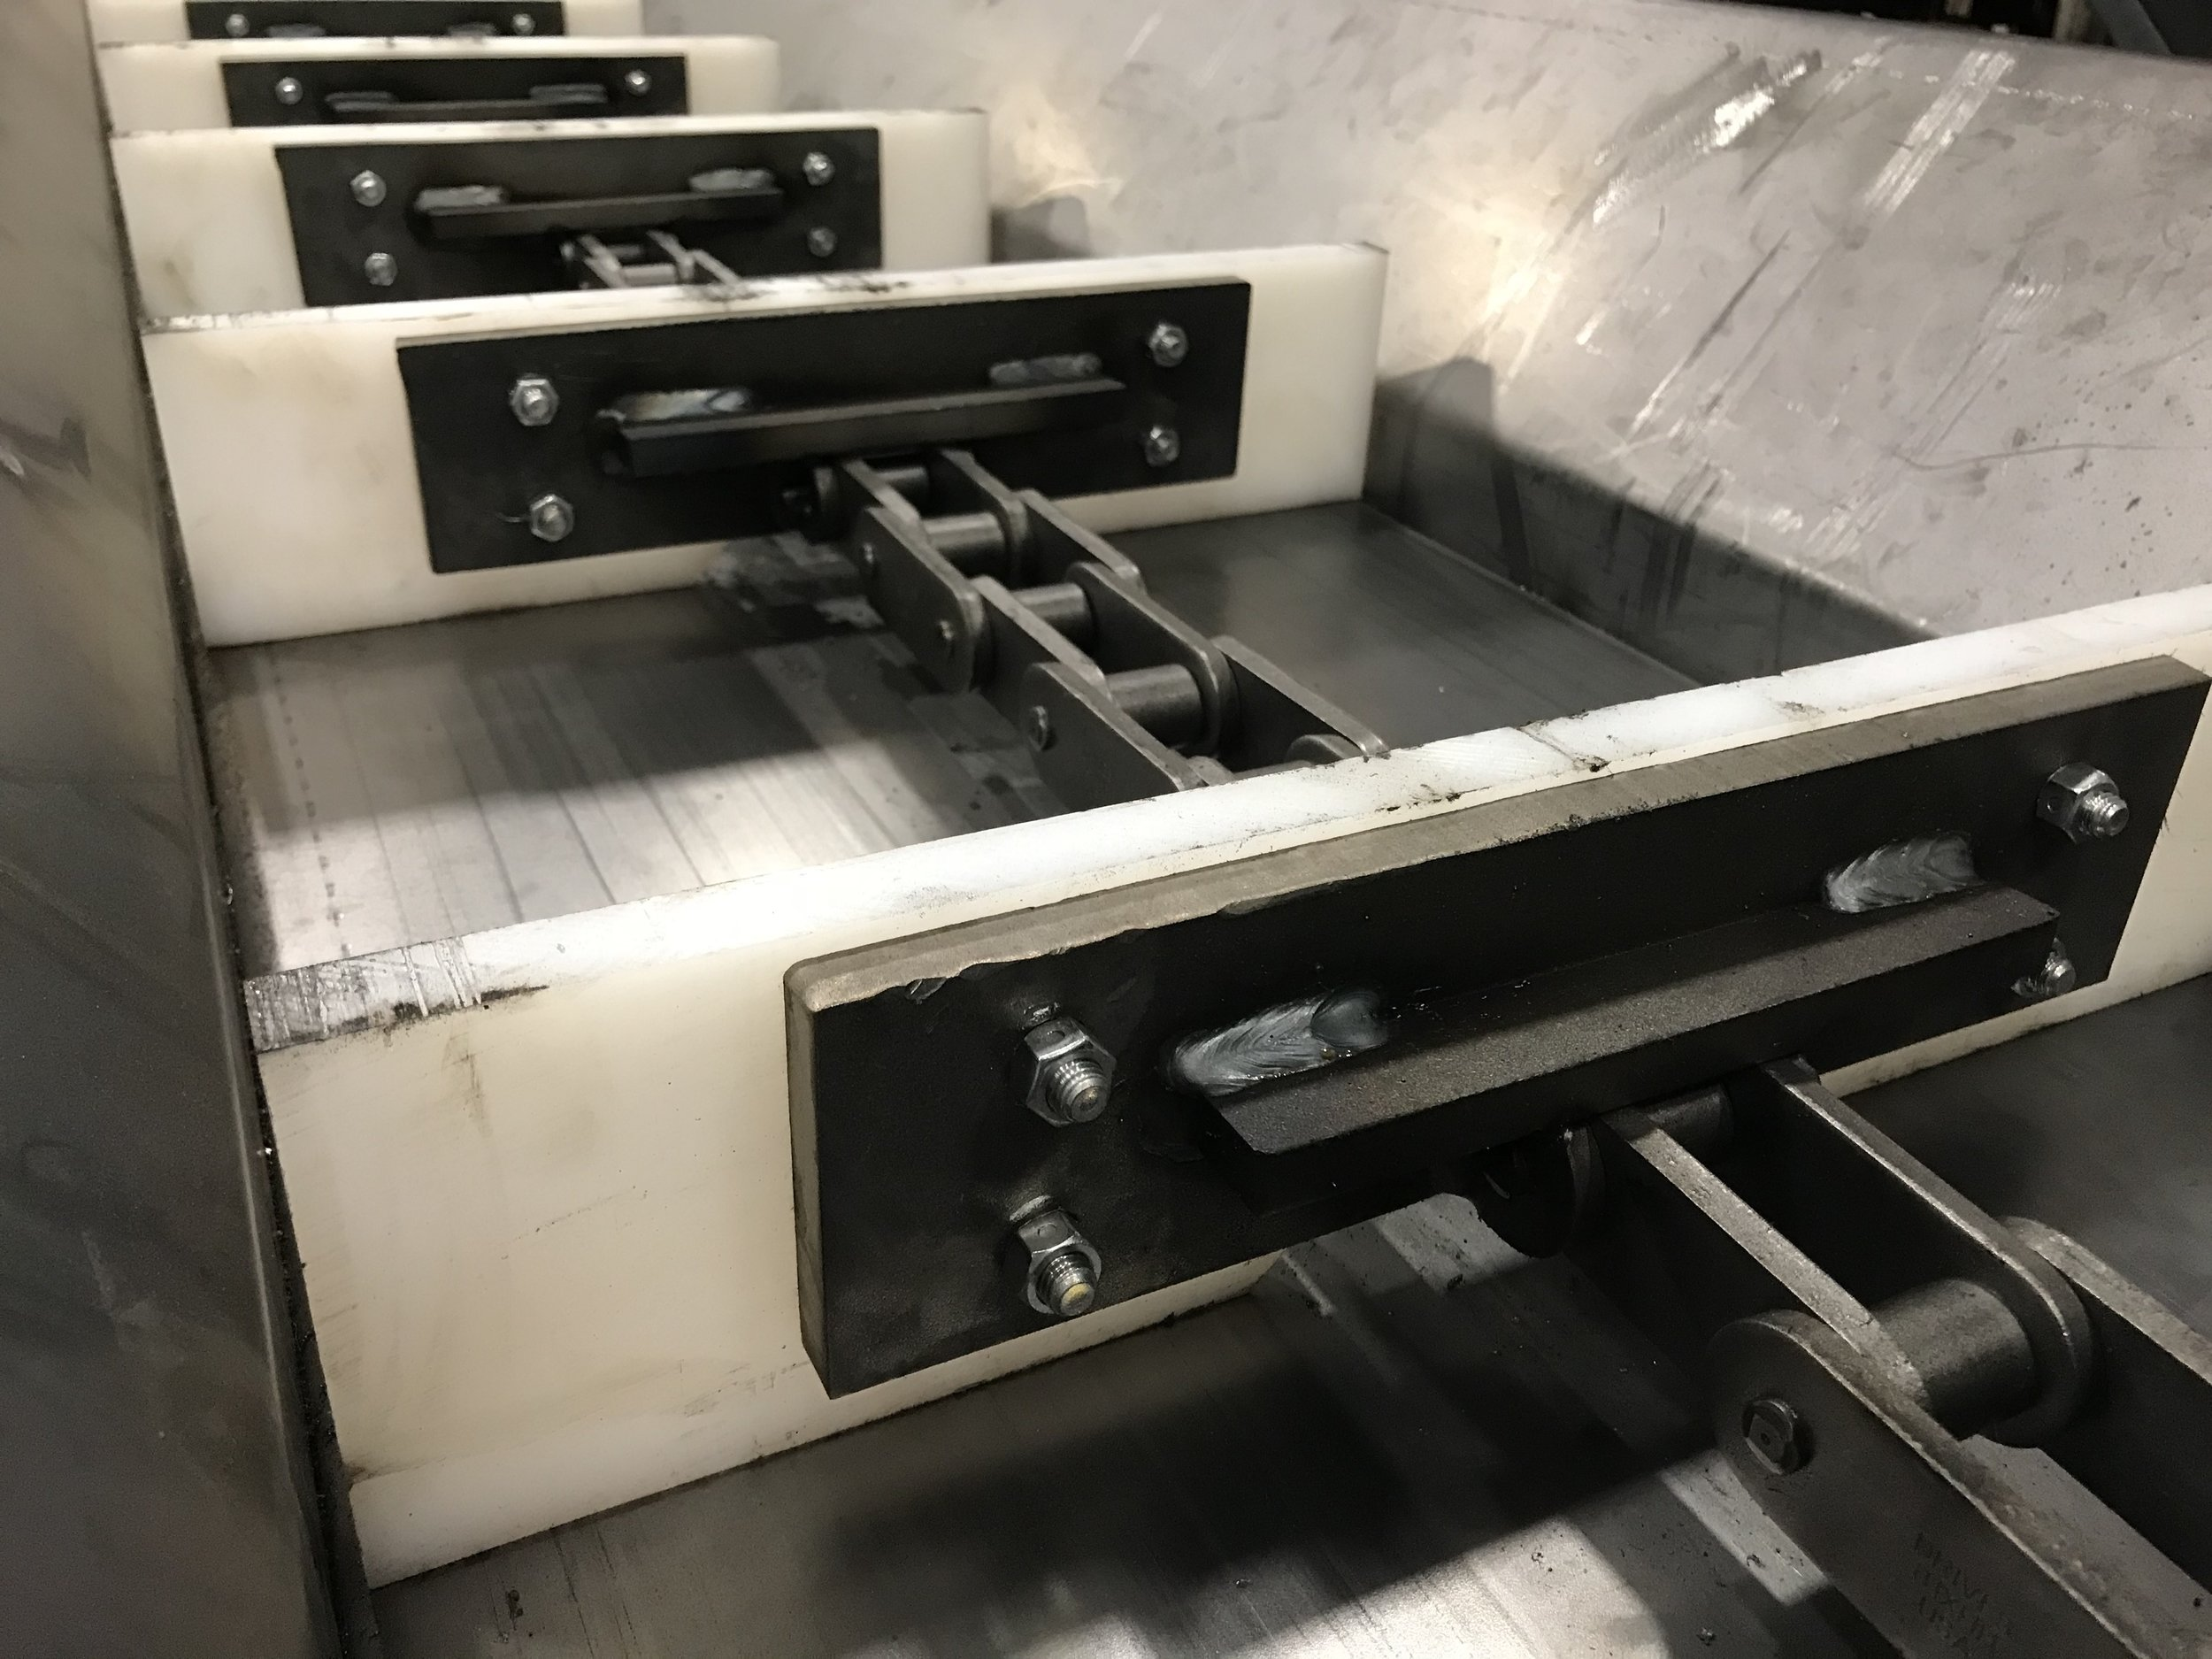 DRAG CHAIN INFEED CONVEYOR   Our heavy duty drag chain conveyor is great for food products that contain liquids or where packaging is fragile. Drag chains are great when the products are too heavy for a cleated belt conveyor.